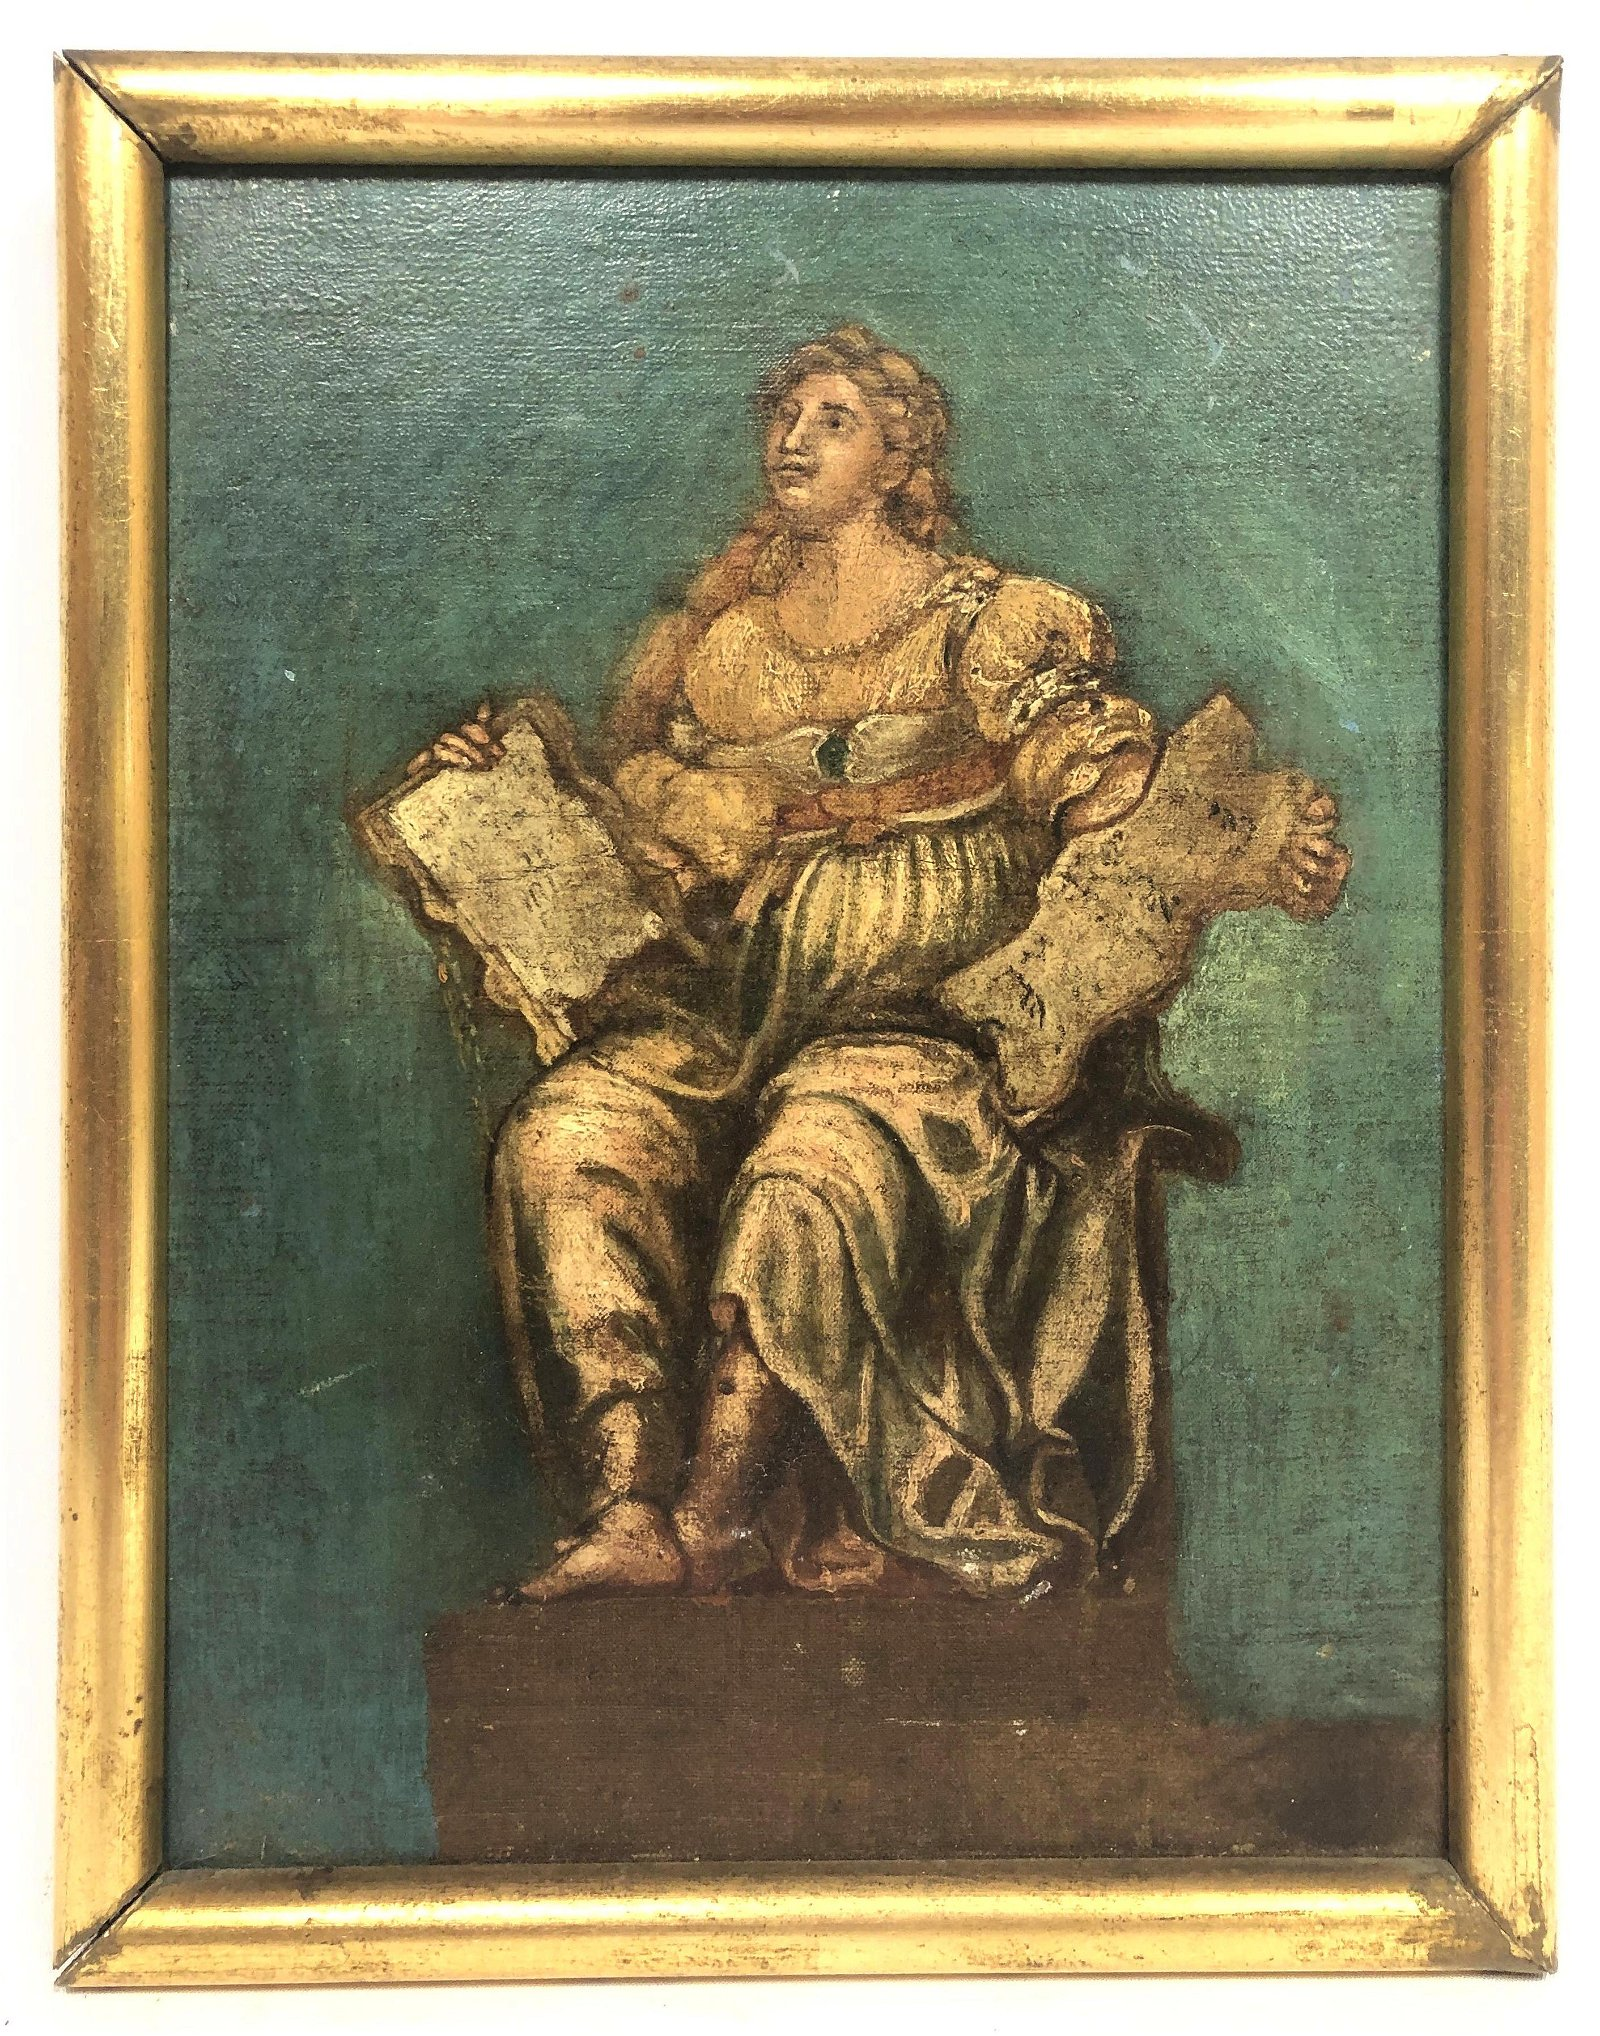 Antique Oil painting of Seated Roman Woman Holding Text